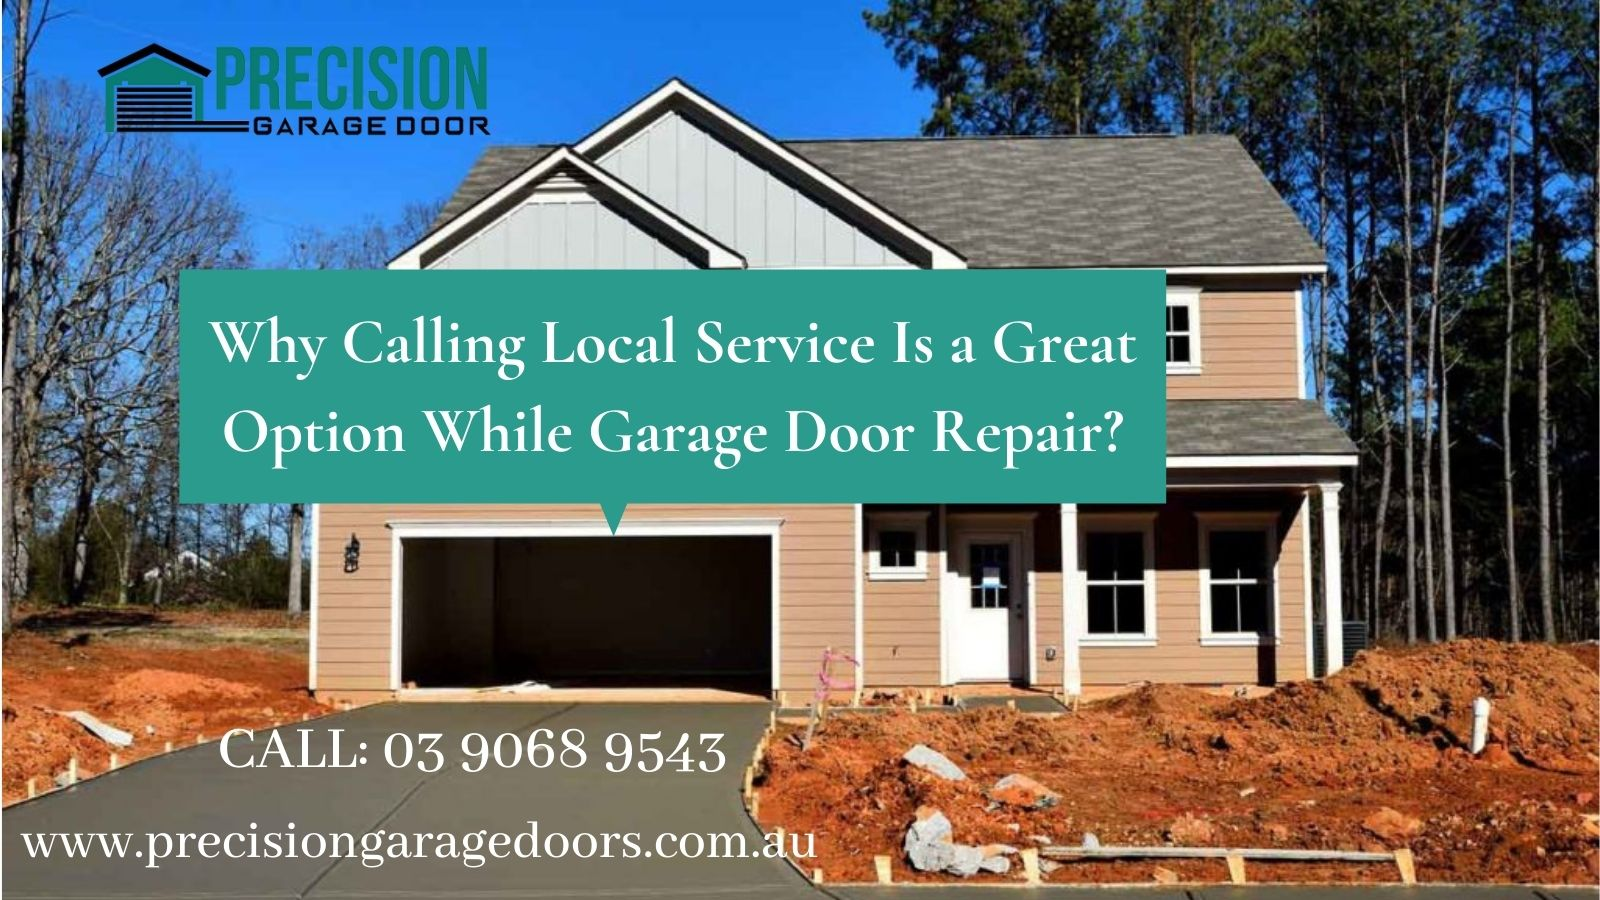 Why Calling Local Service Is a Great Option While Garage Door Repair